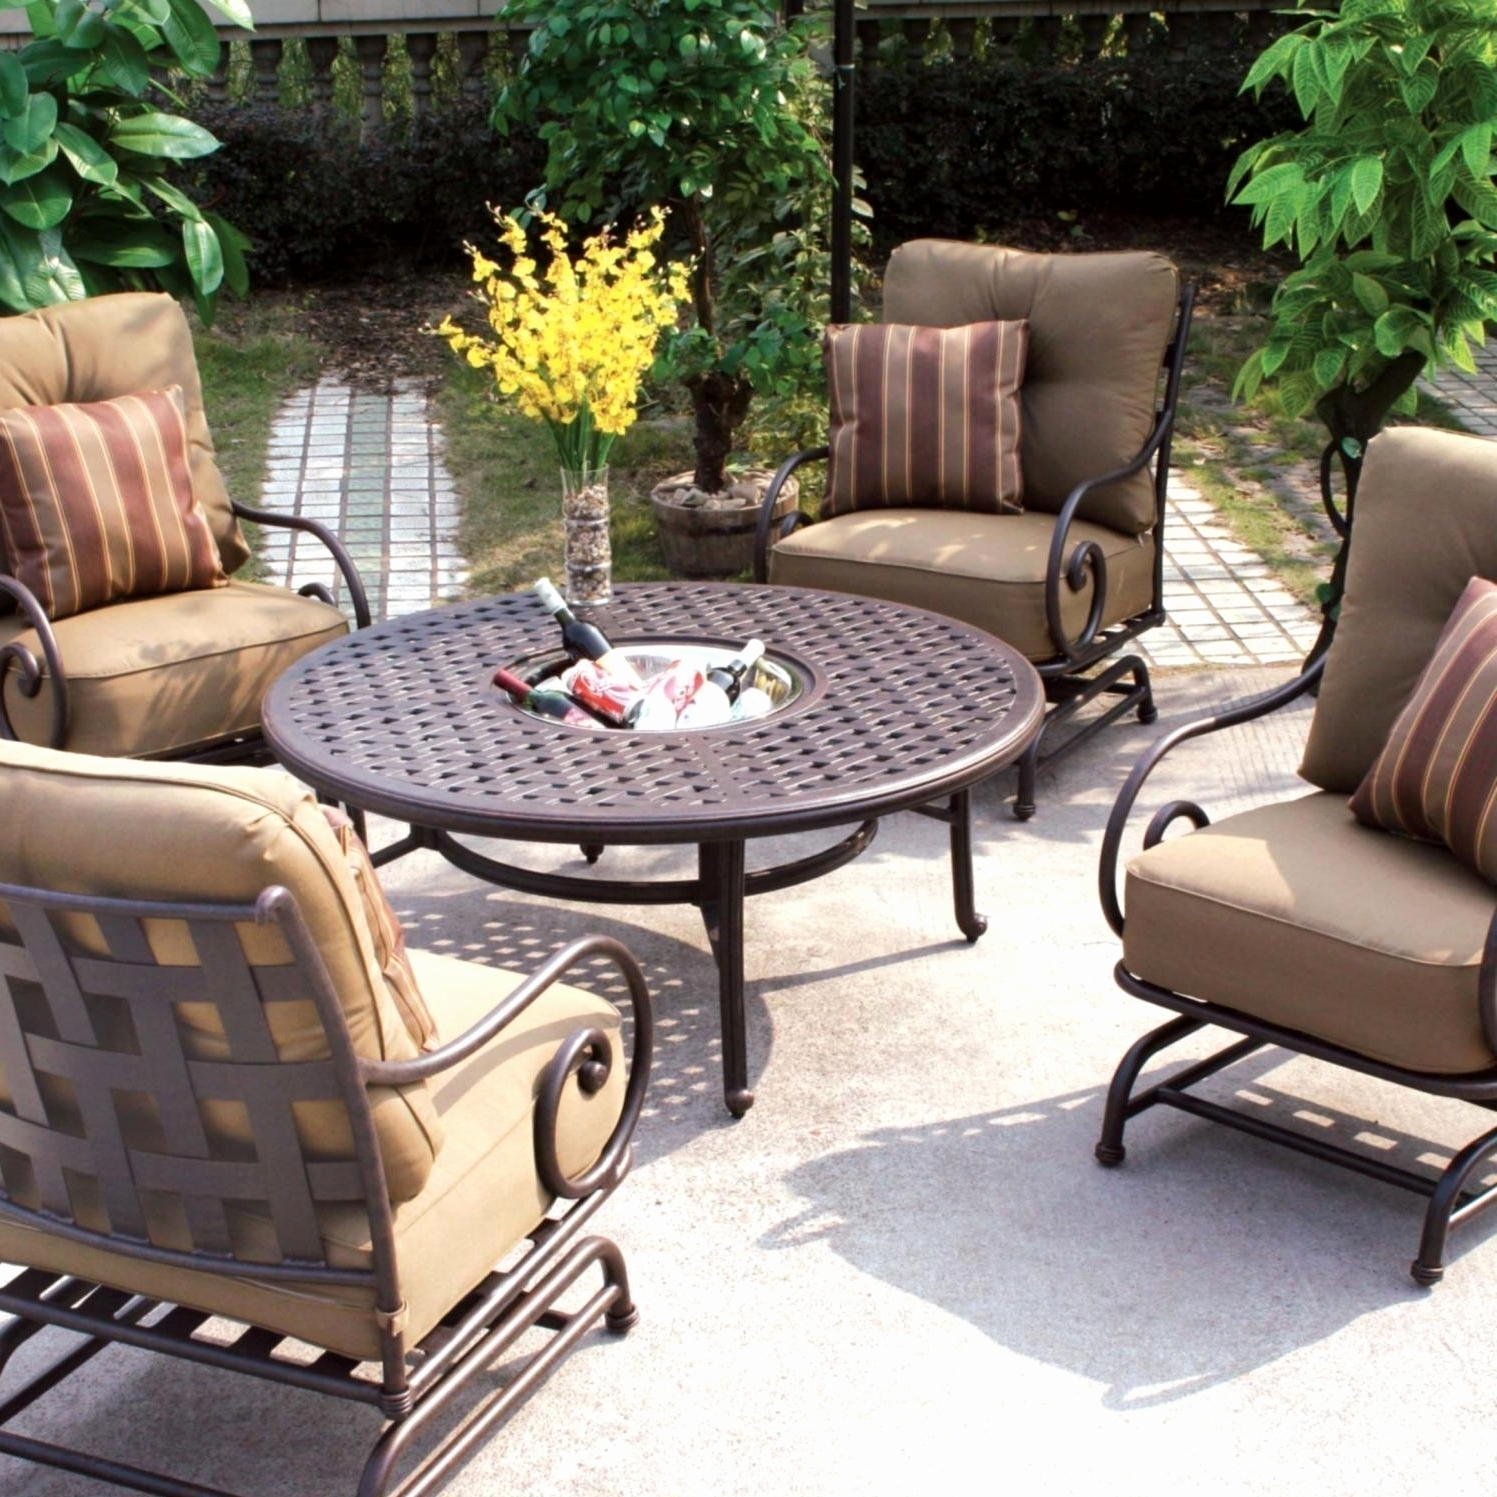 Patio Furniture Lowes Home Depot Patio Furniture Lowes Outdoor Regarding Fashionable Patio Conversation Sets With Swivel Chairs (View 7 of 20)